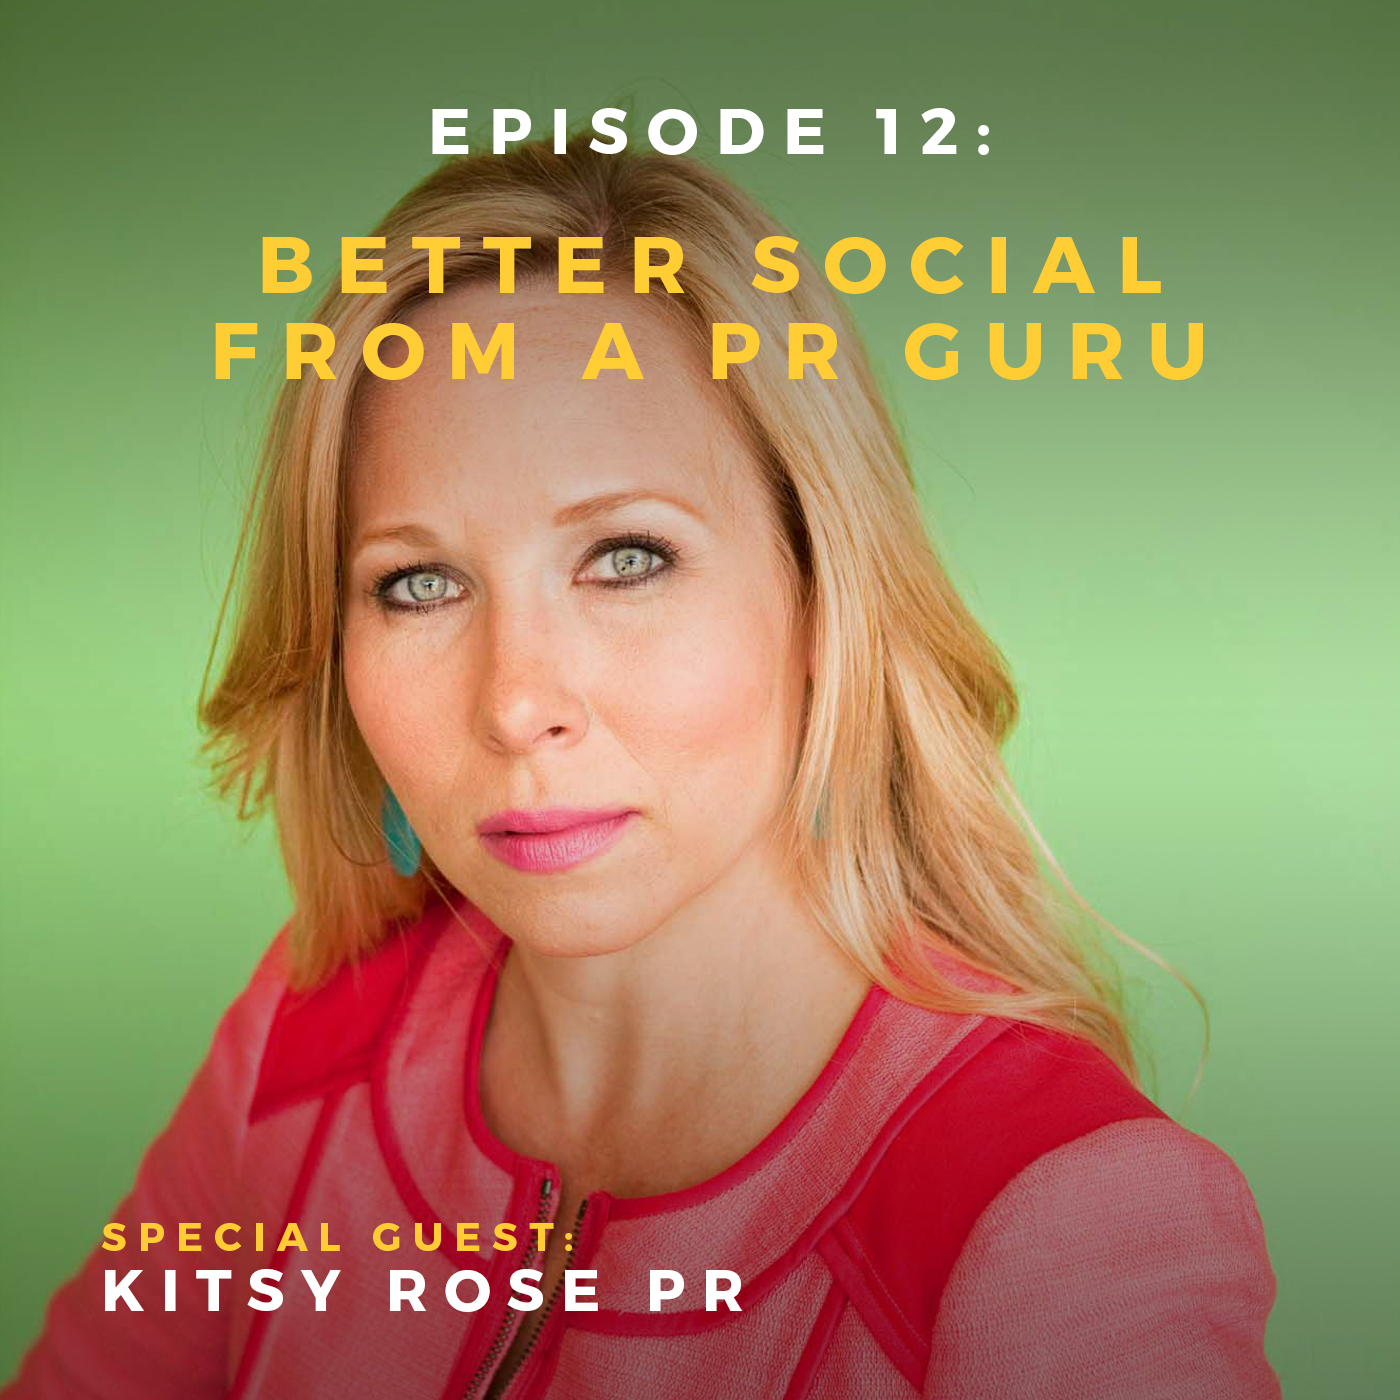 Podcast interview and chat with Kitsy Rose Public Relations PR in Atlanta, Georgia